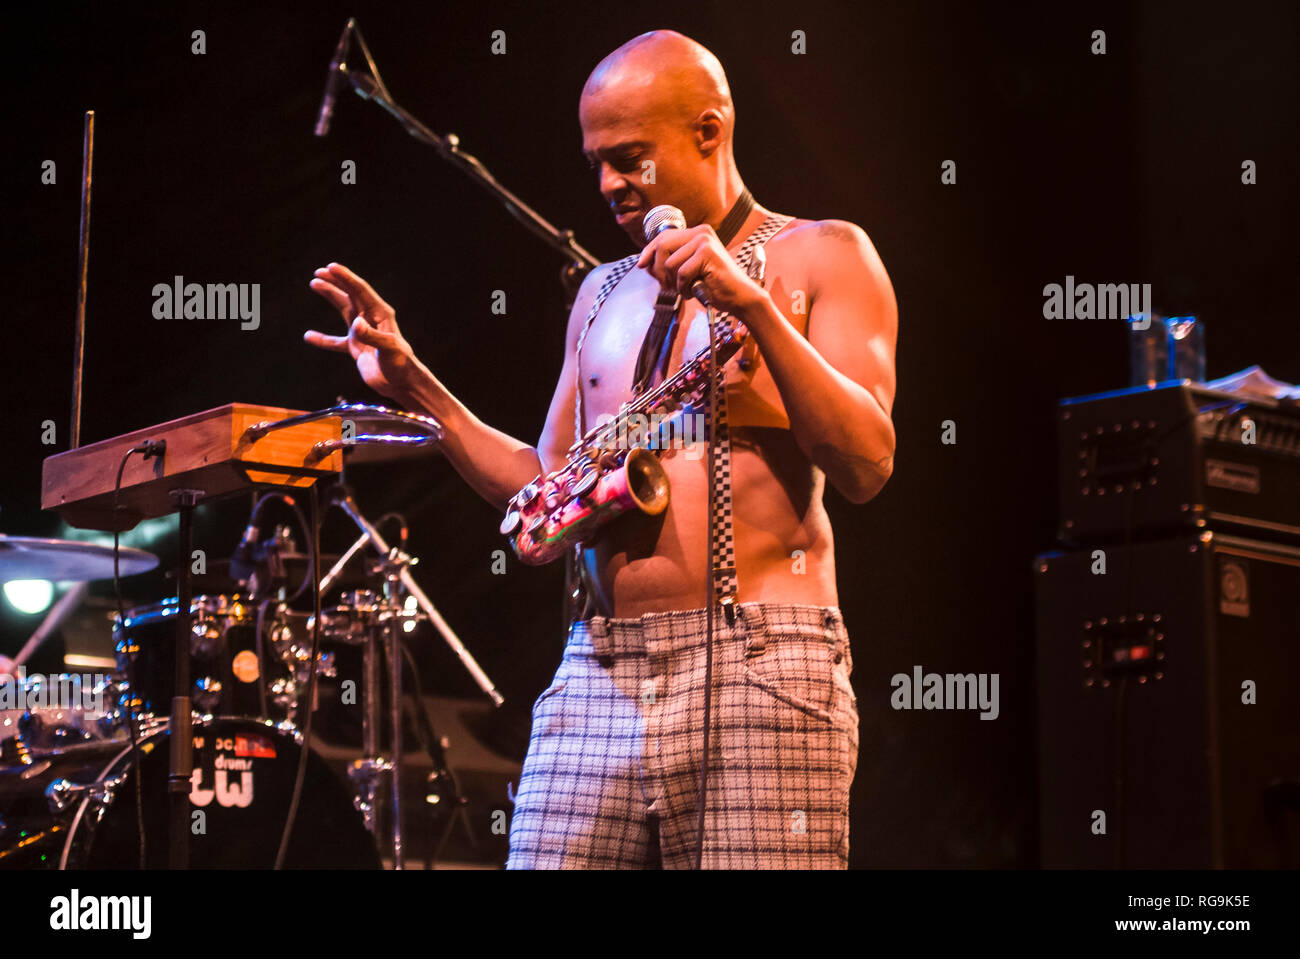 Angelo Moore singer of the alternative rock band Fishbone performing live at Kesselhaus, Berlin - Germany. Stock Photo